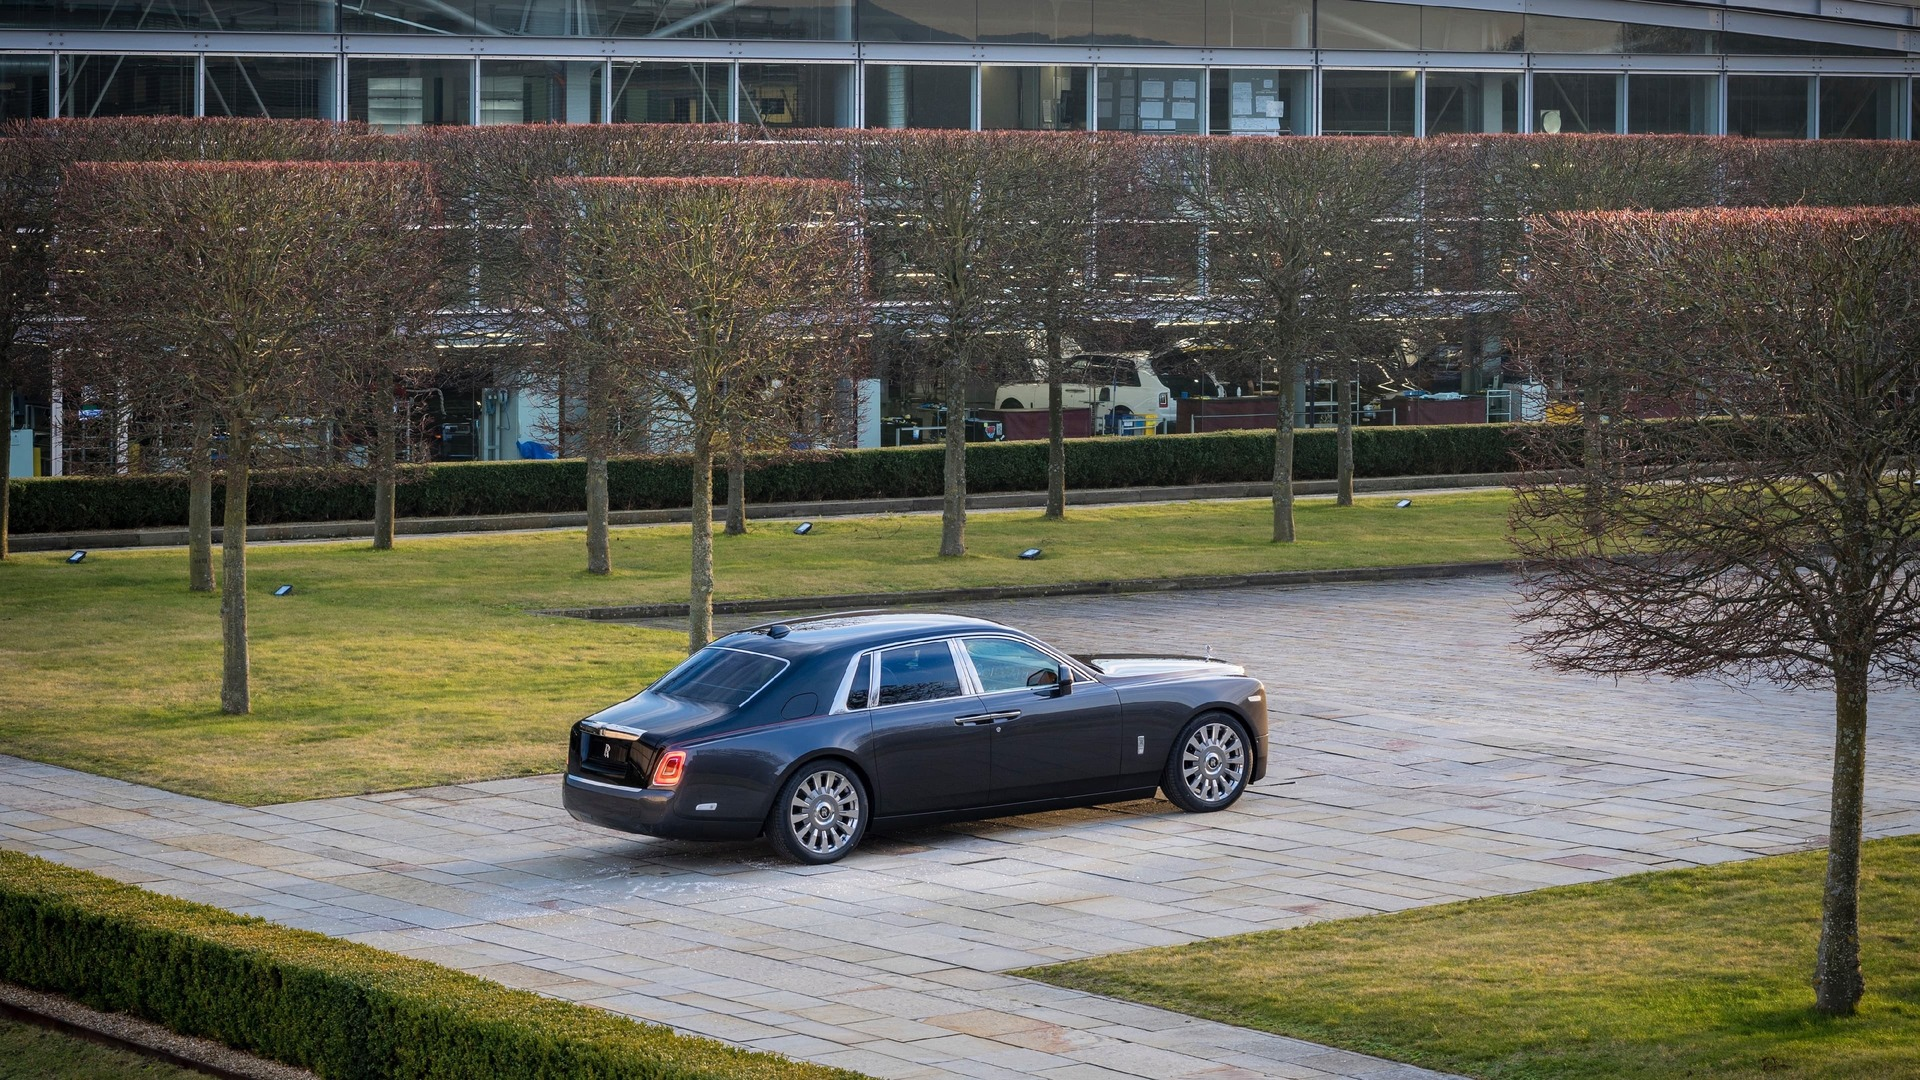 Far away view of gunmetal Rolls-Royce Phantom standard wheelbase